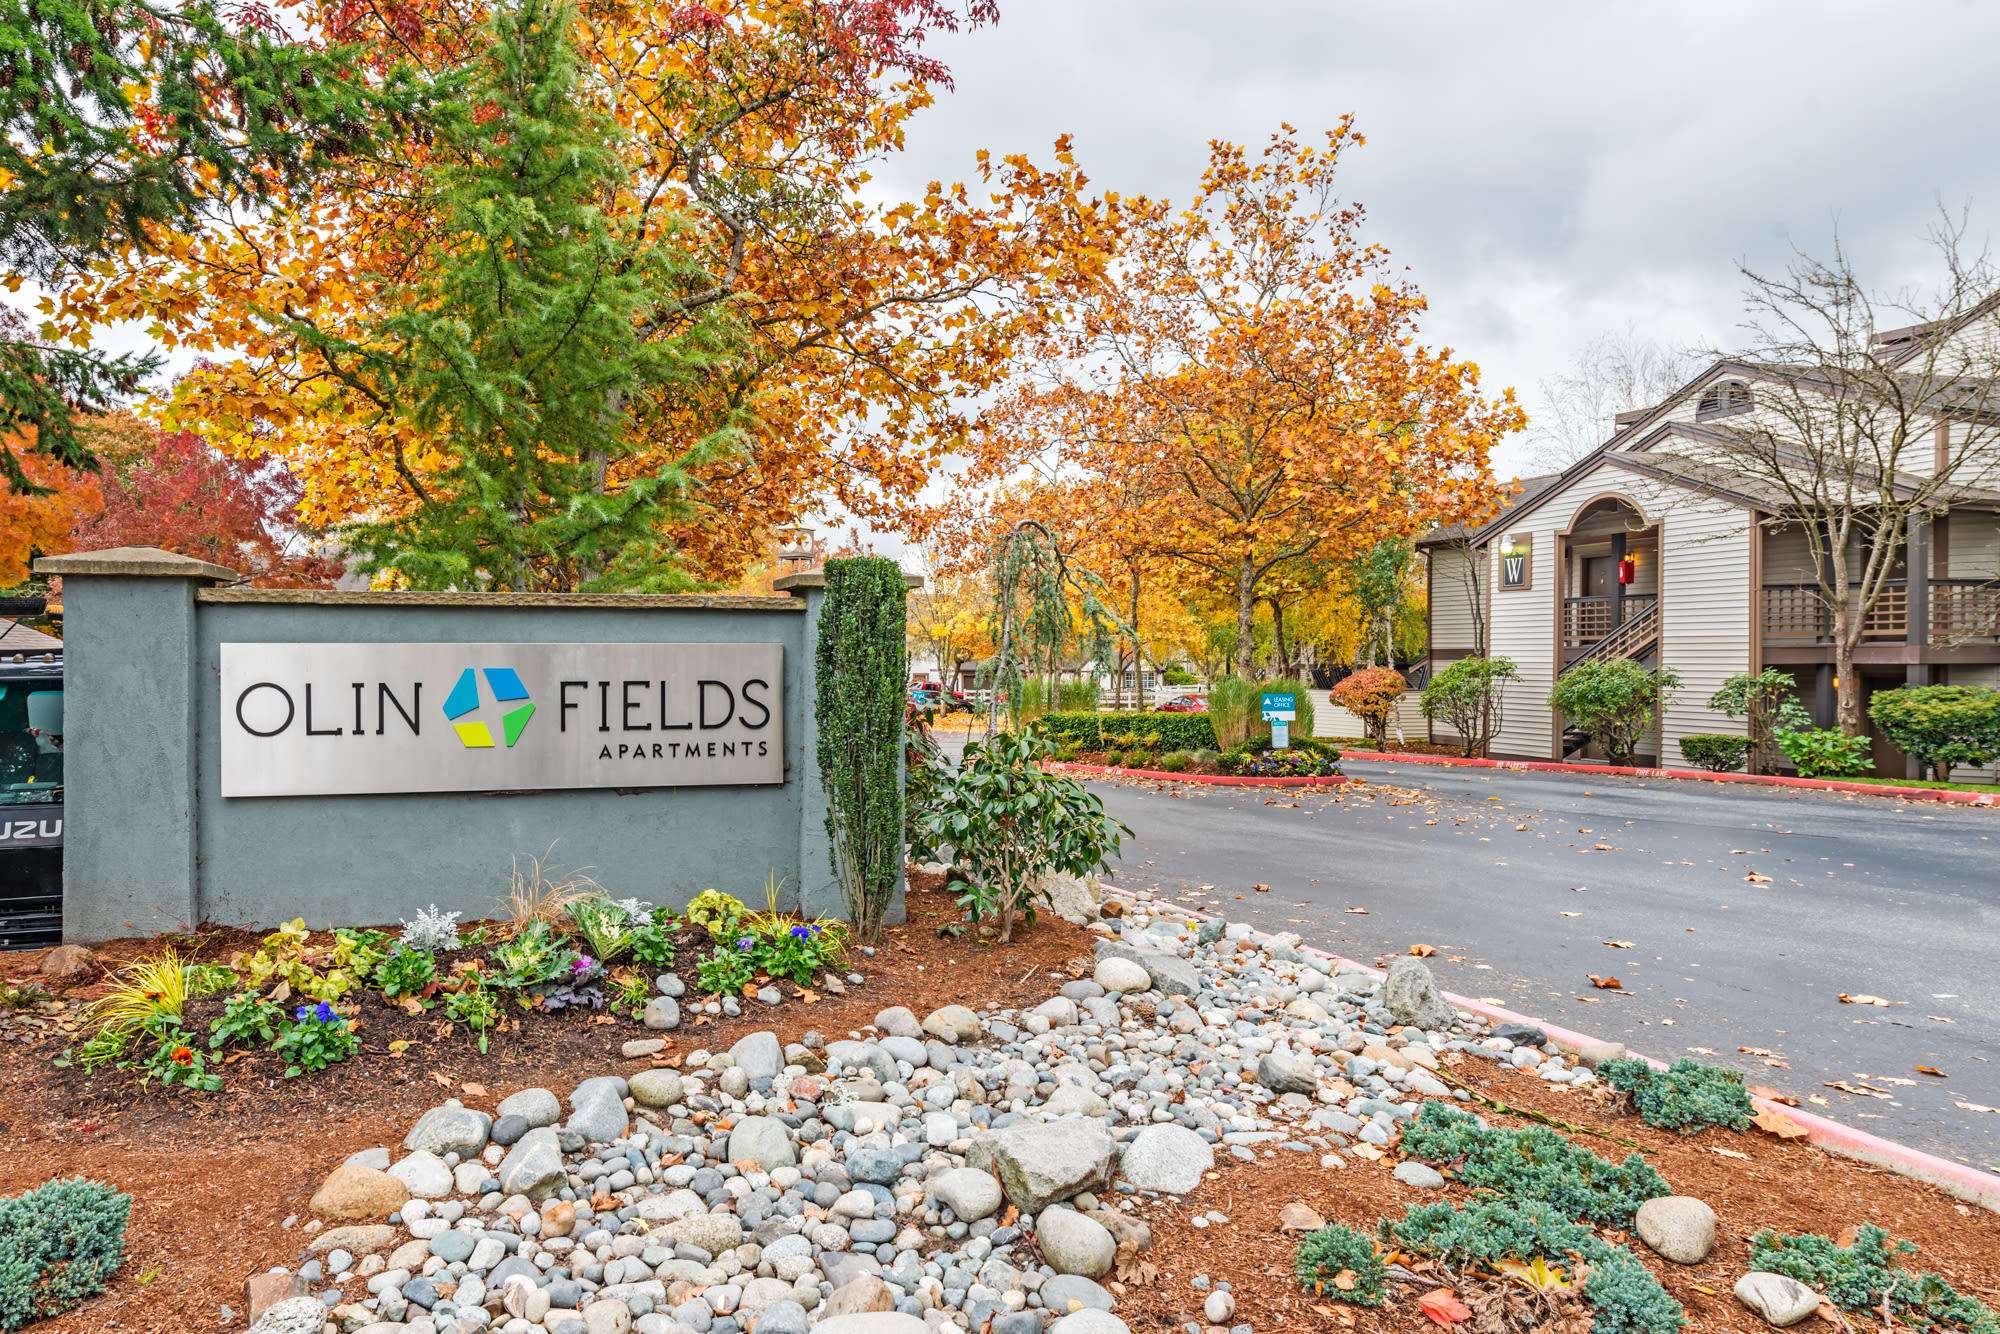 Main sign to Olin Fields Apartments